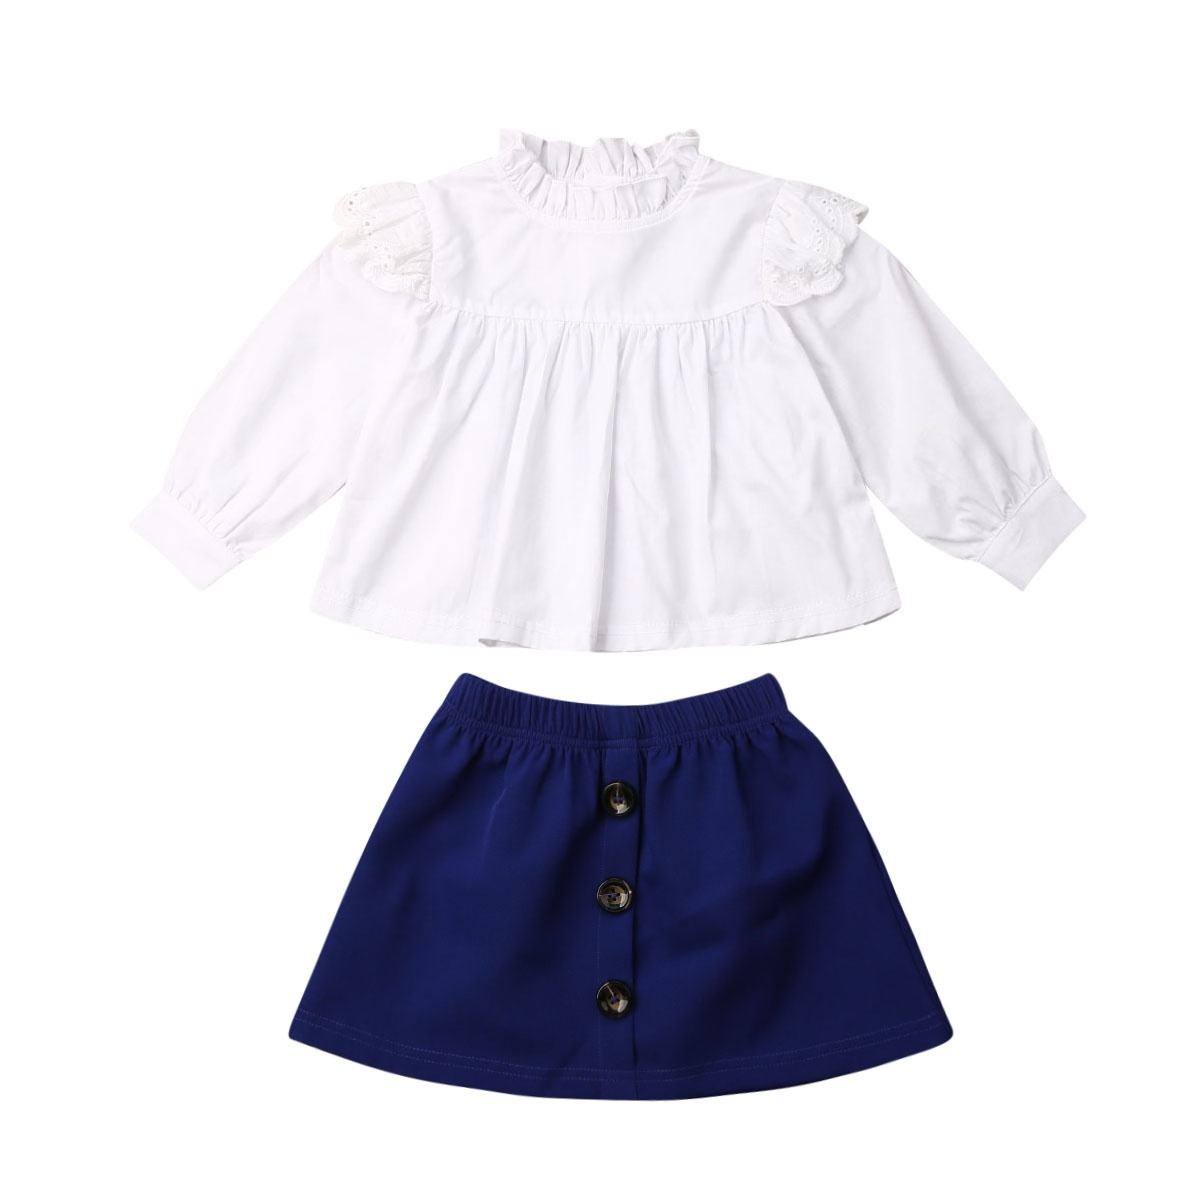 3 piece toddler top Size 2T. skirt and shorts set